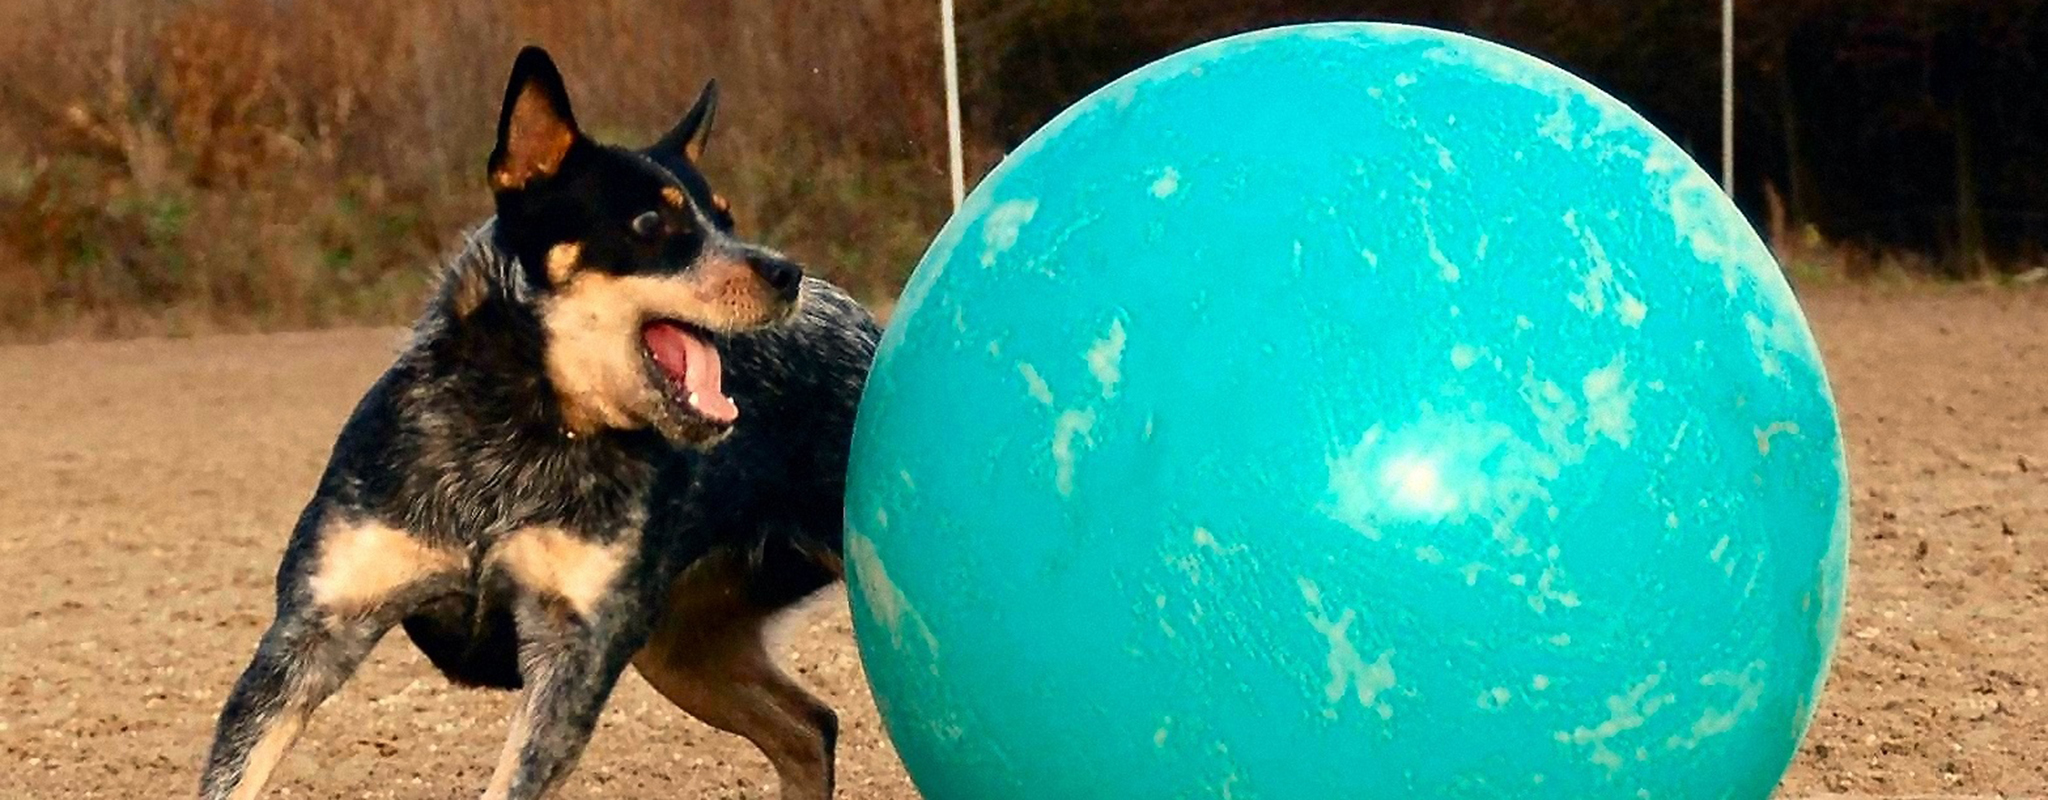 Dog moving Treibball ball